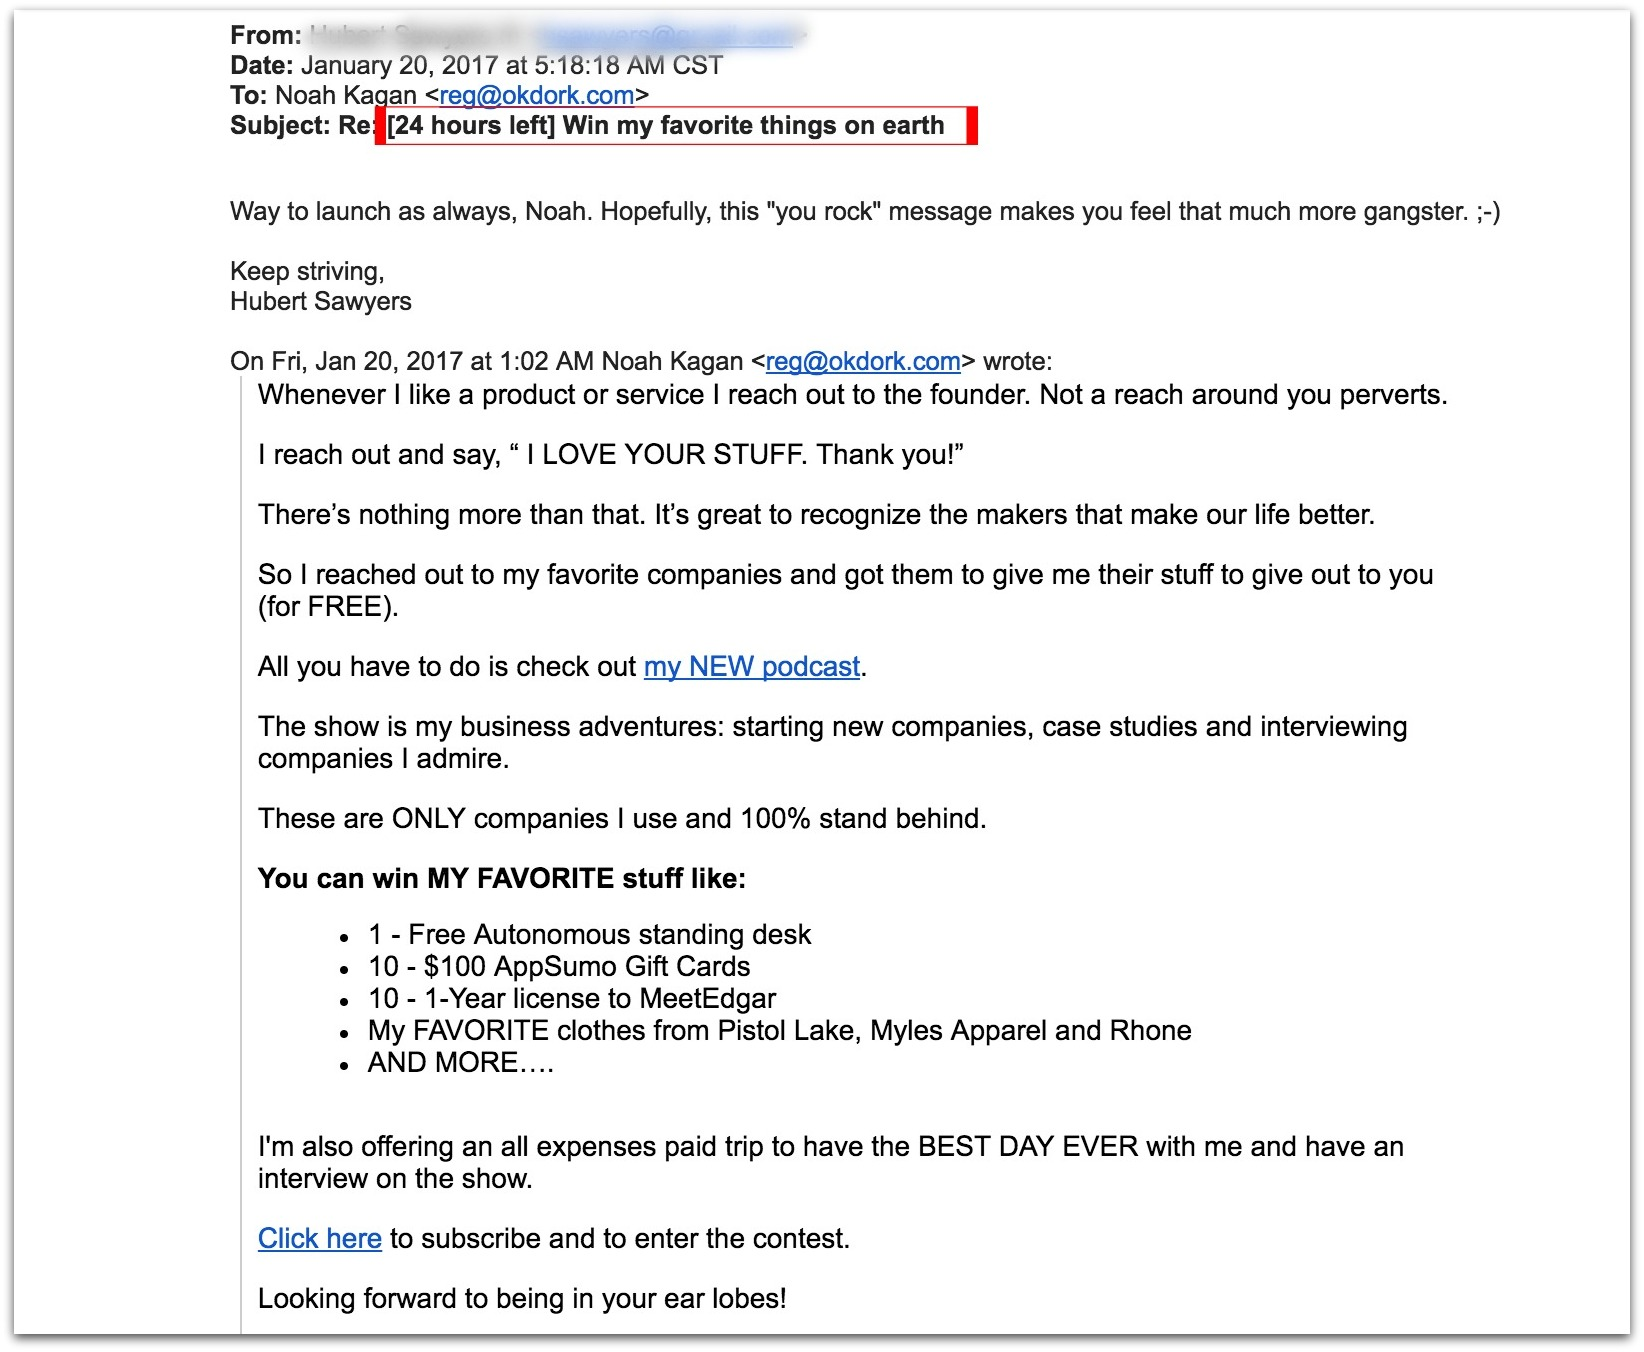 email example